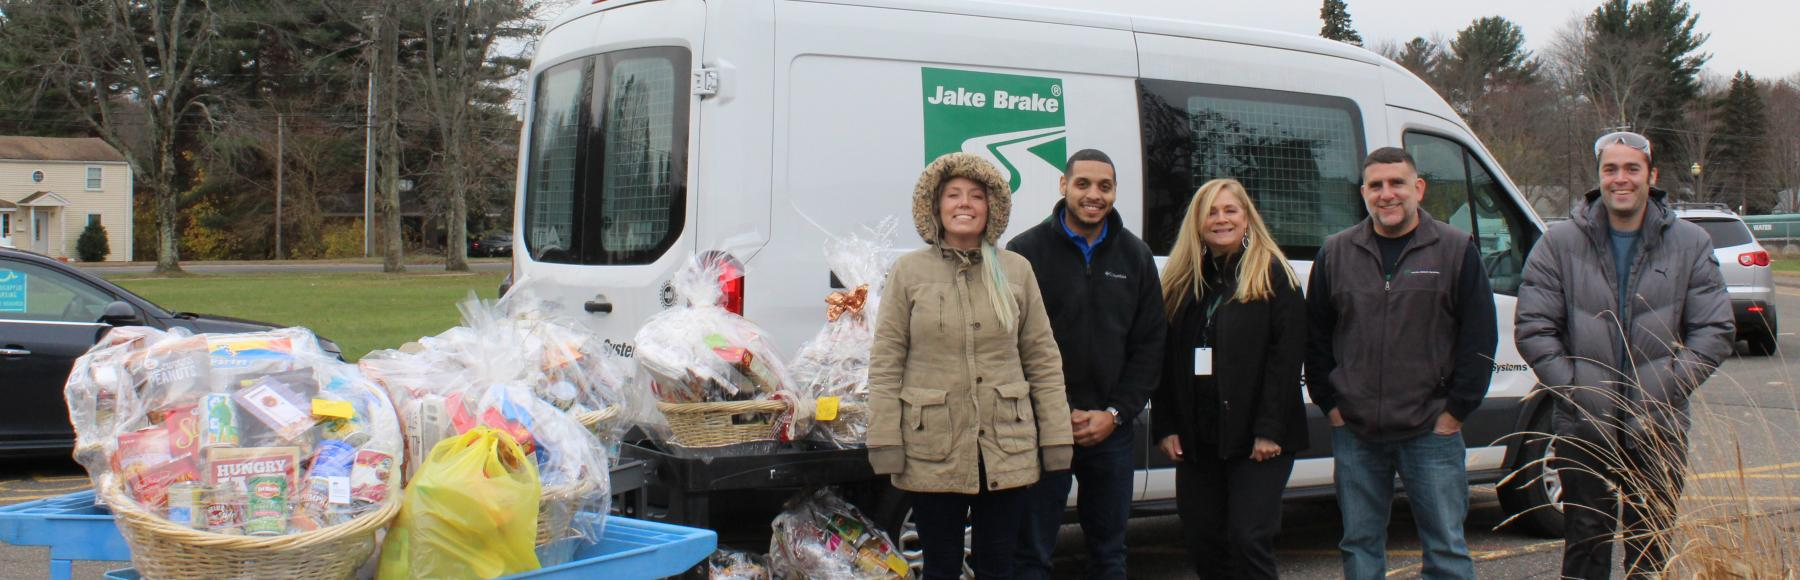 Group of five Jacobs employees wearing winter coats while standing outside in front of a white delivery van with a Jake Brake logo on the side.  There are also rolling carts which are holding gift baskets that contain food and supplies for Thanksgiving.